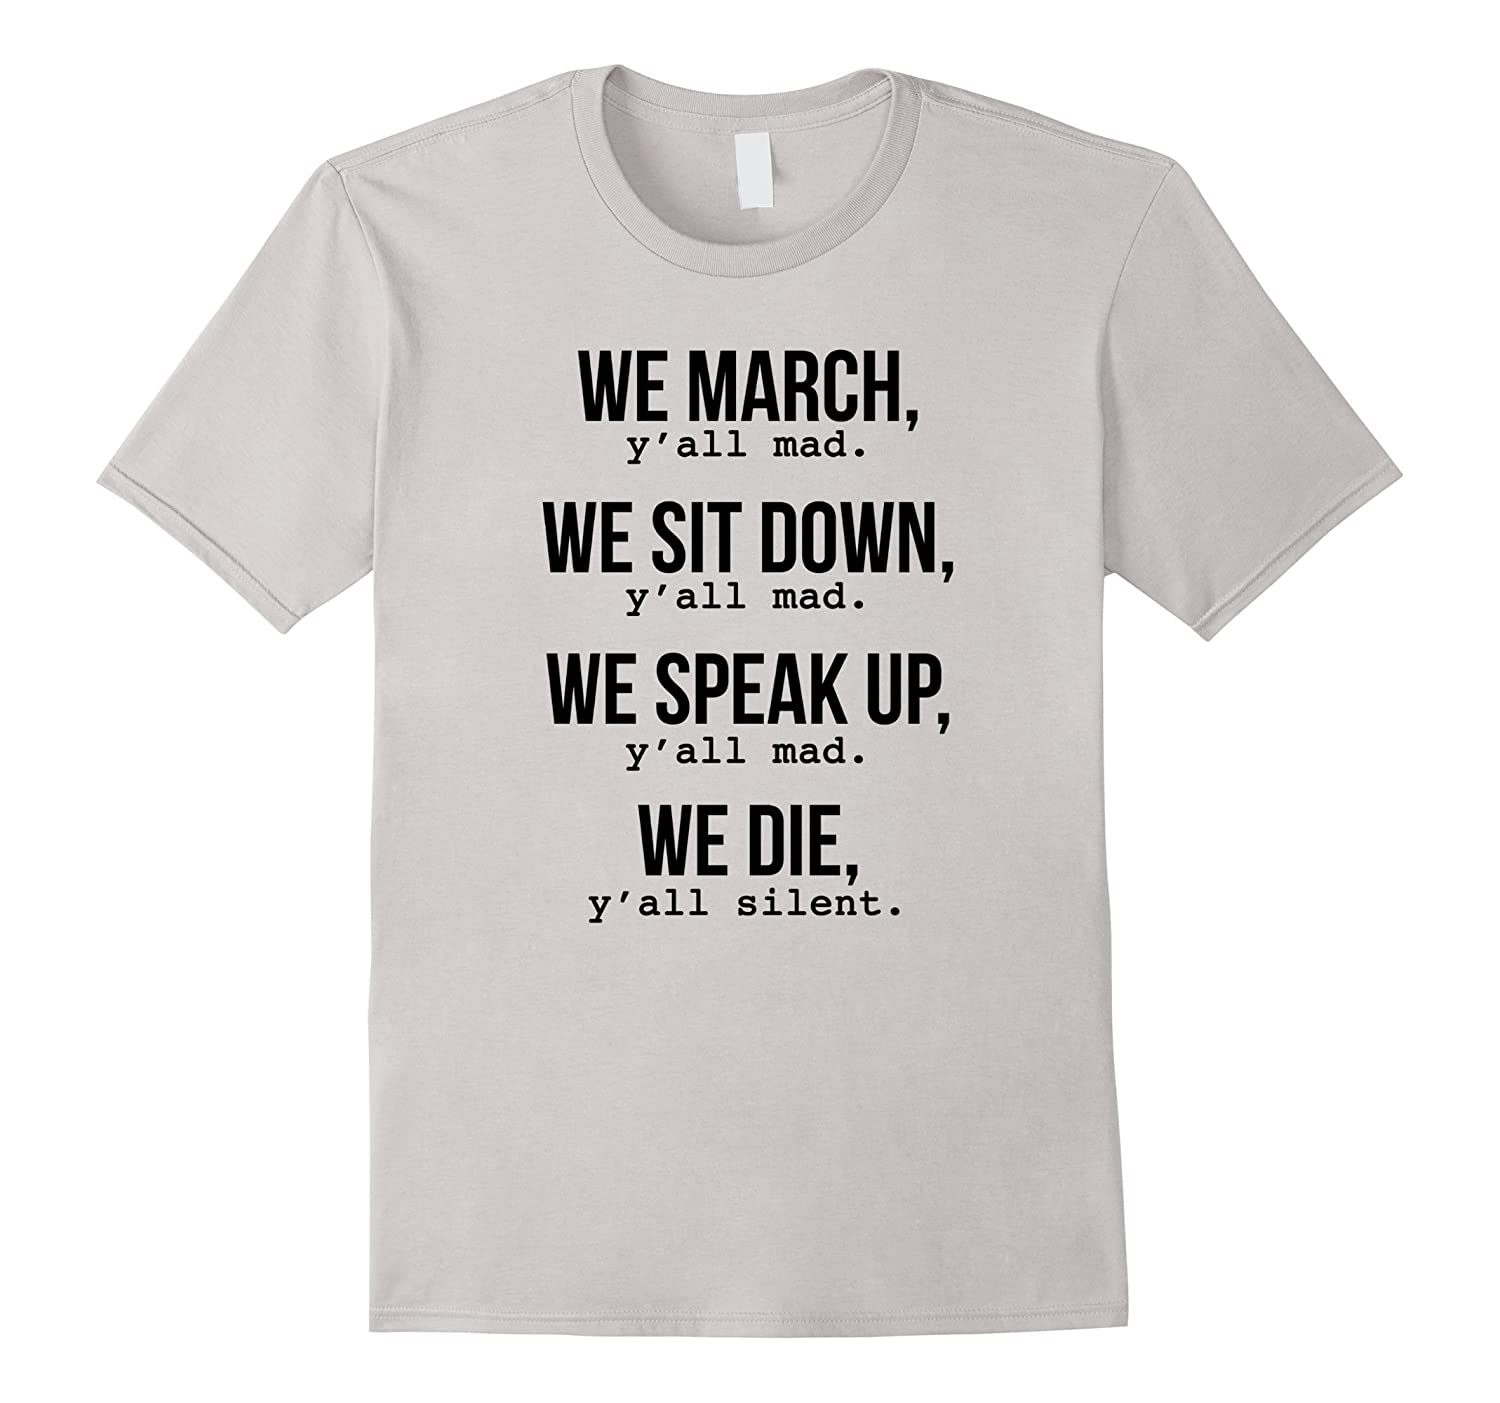 We March, Y'all Mad BLM T-Shirt for Civil Rights-FL